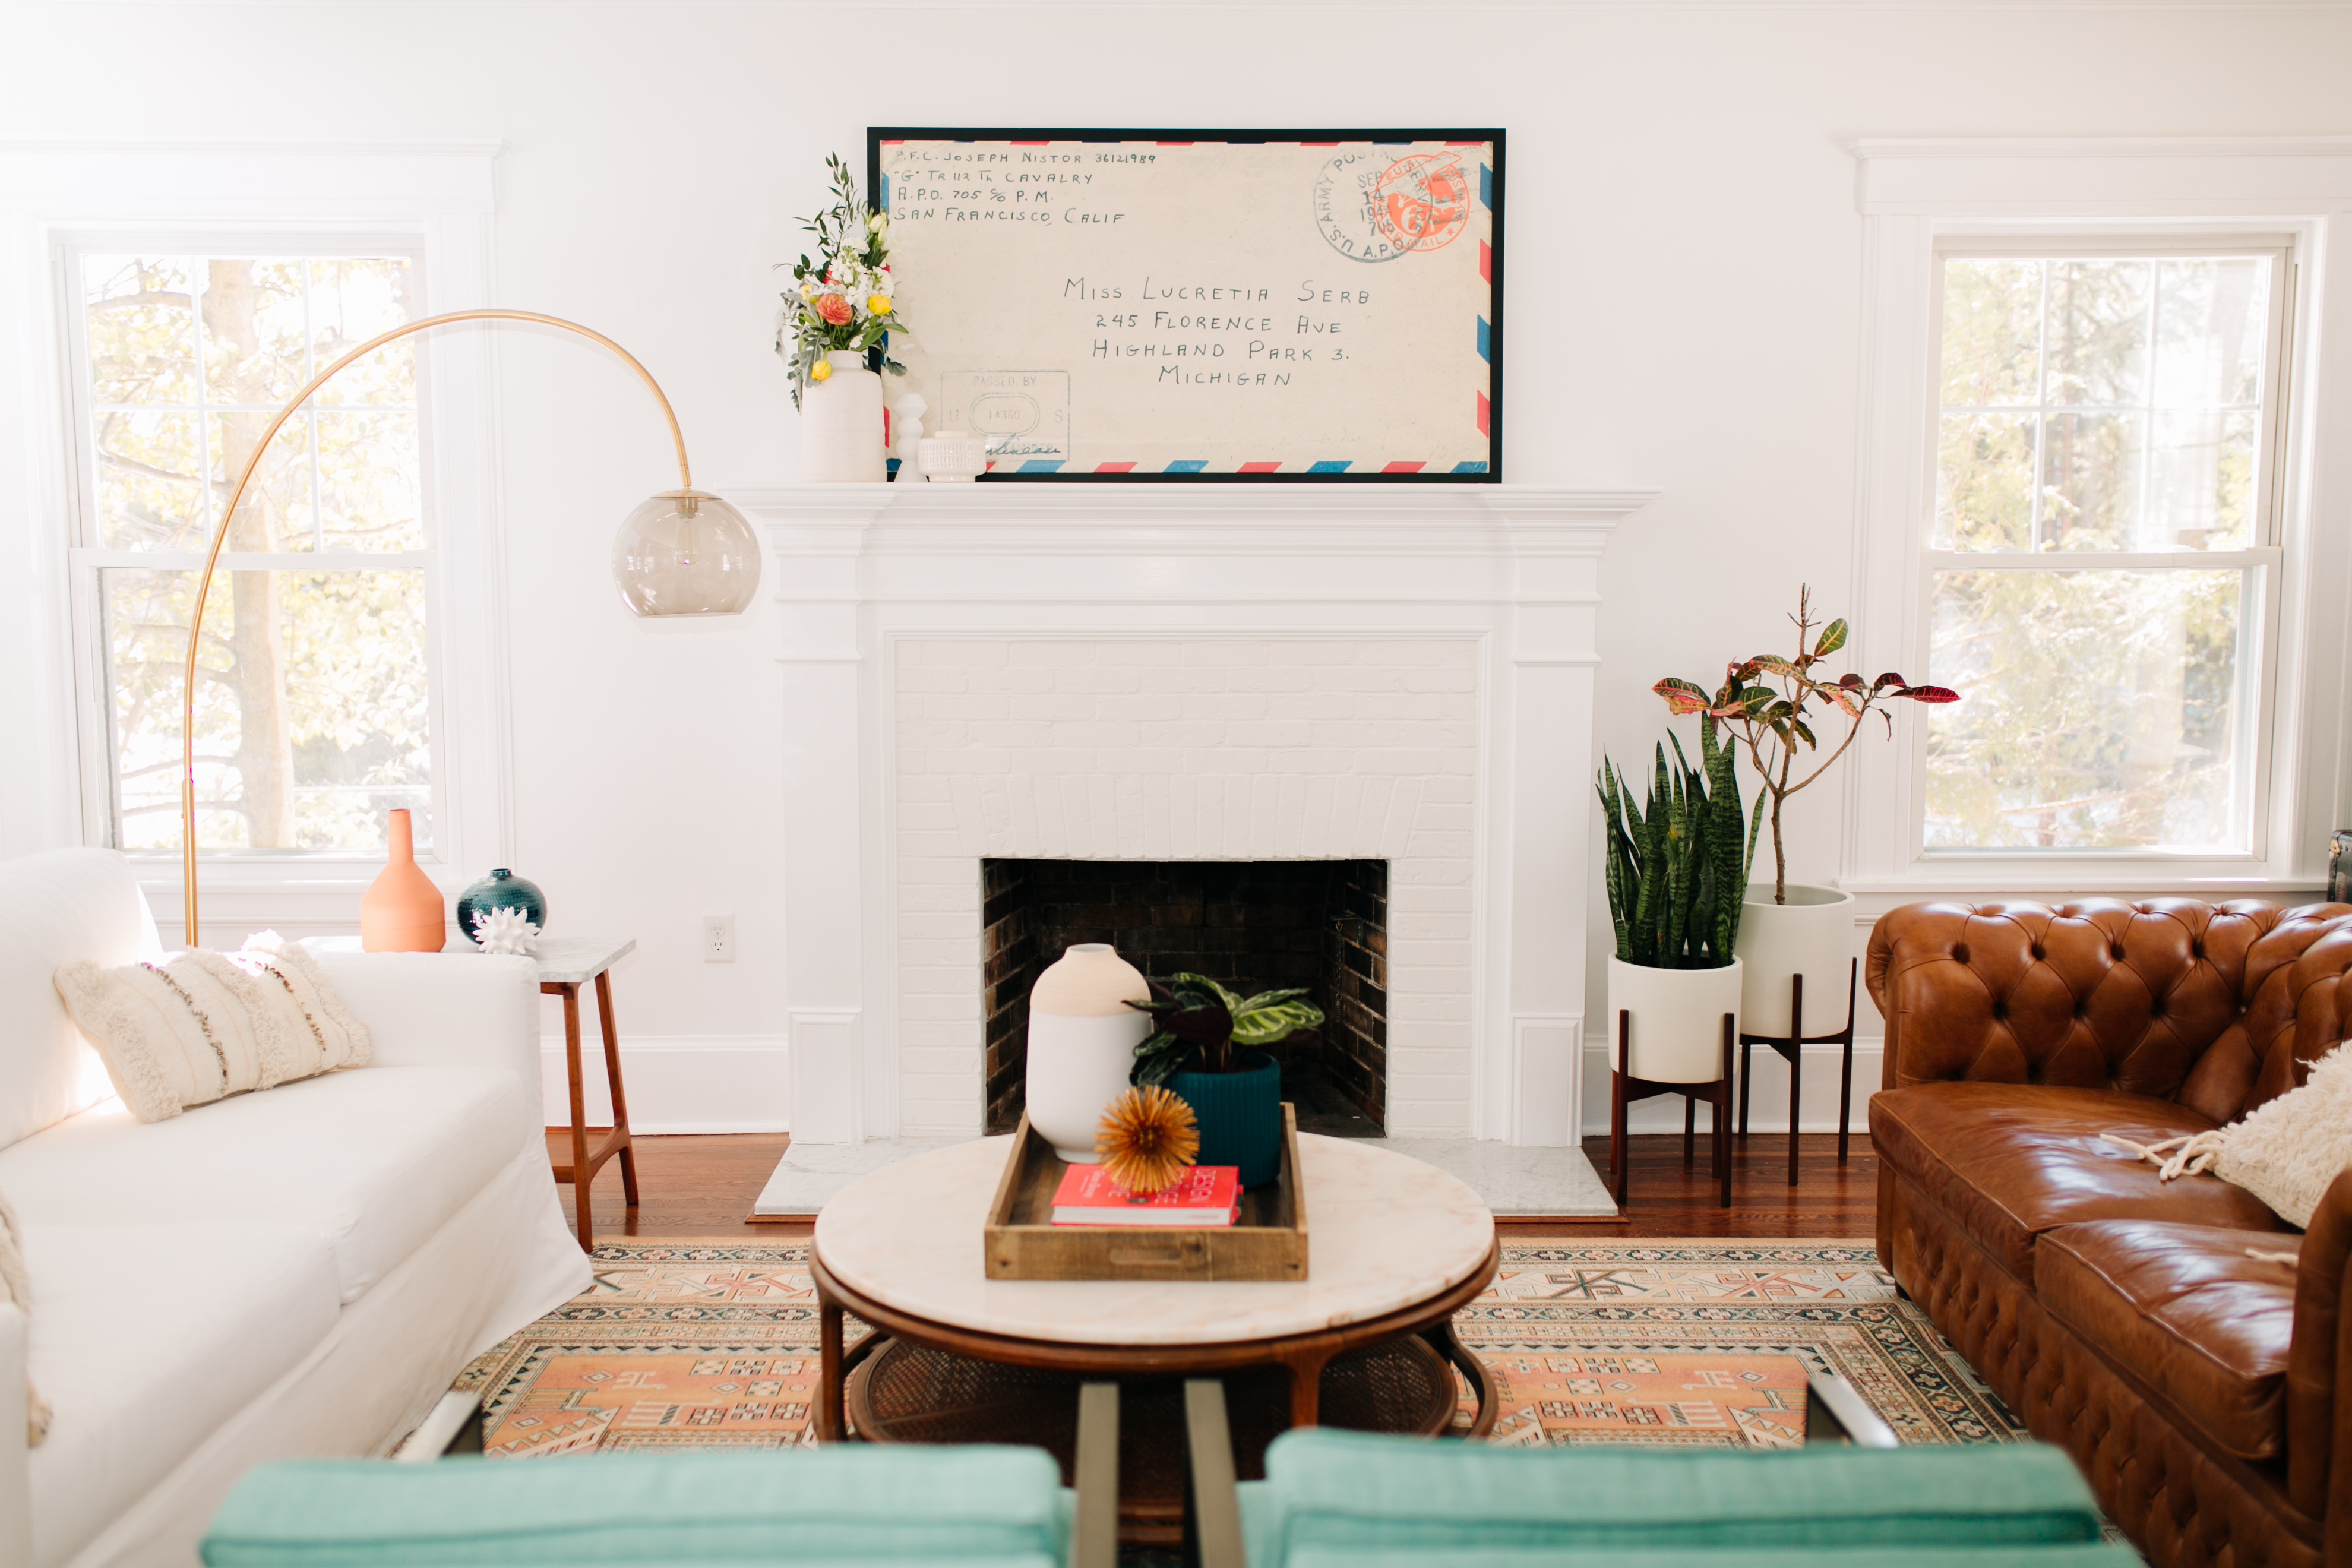 Decorating A New Home Always Feels Like A Herculean Task But With The Help Of Havenly It S Totally Doable Amanda And Her Designer Were Able To Use